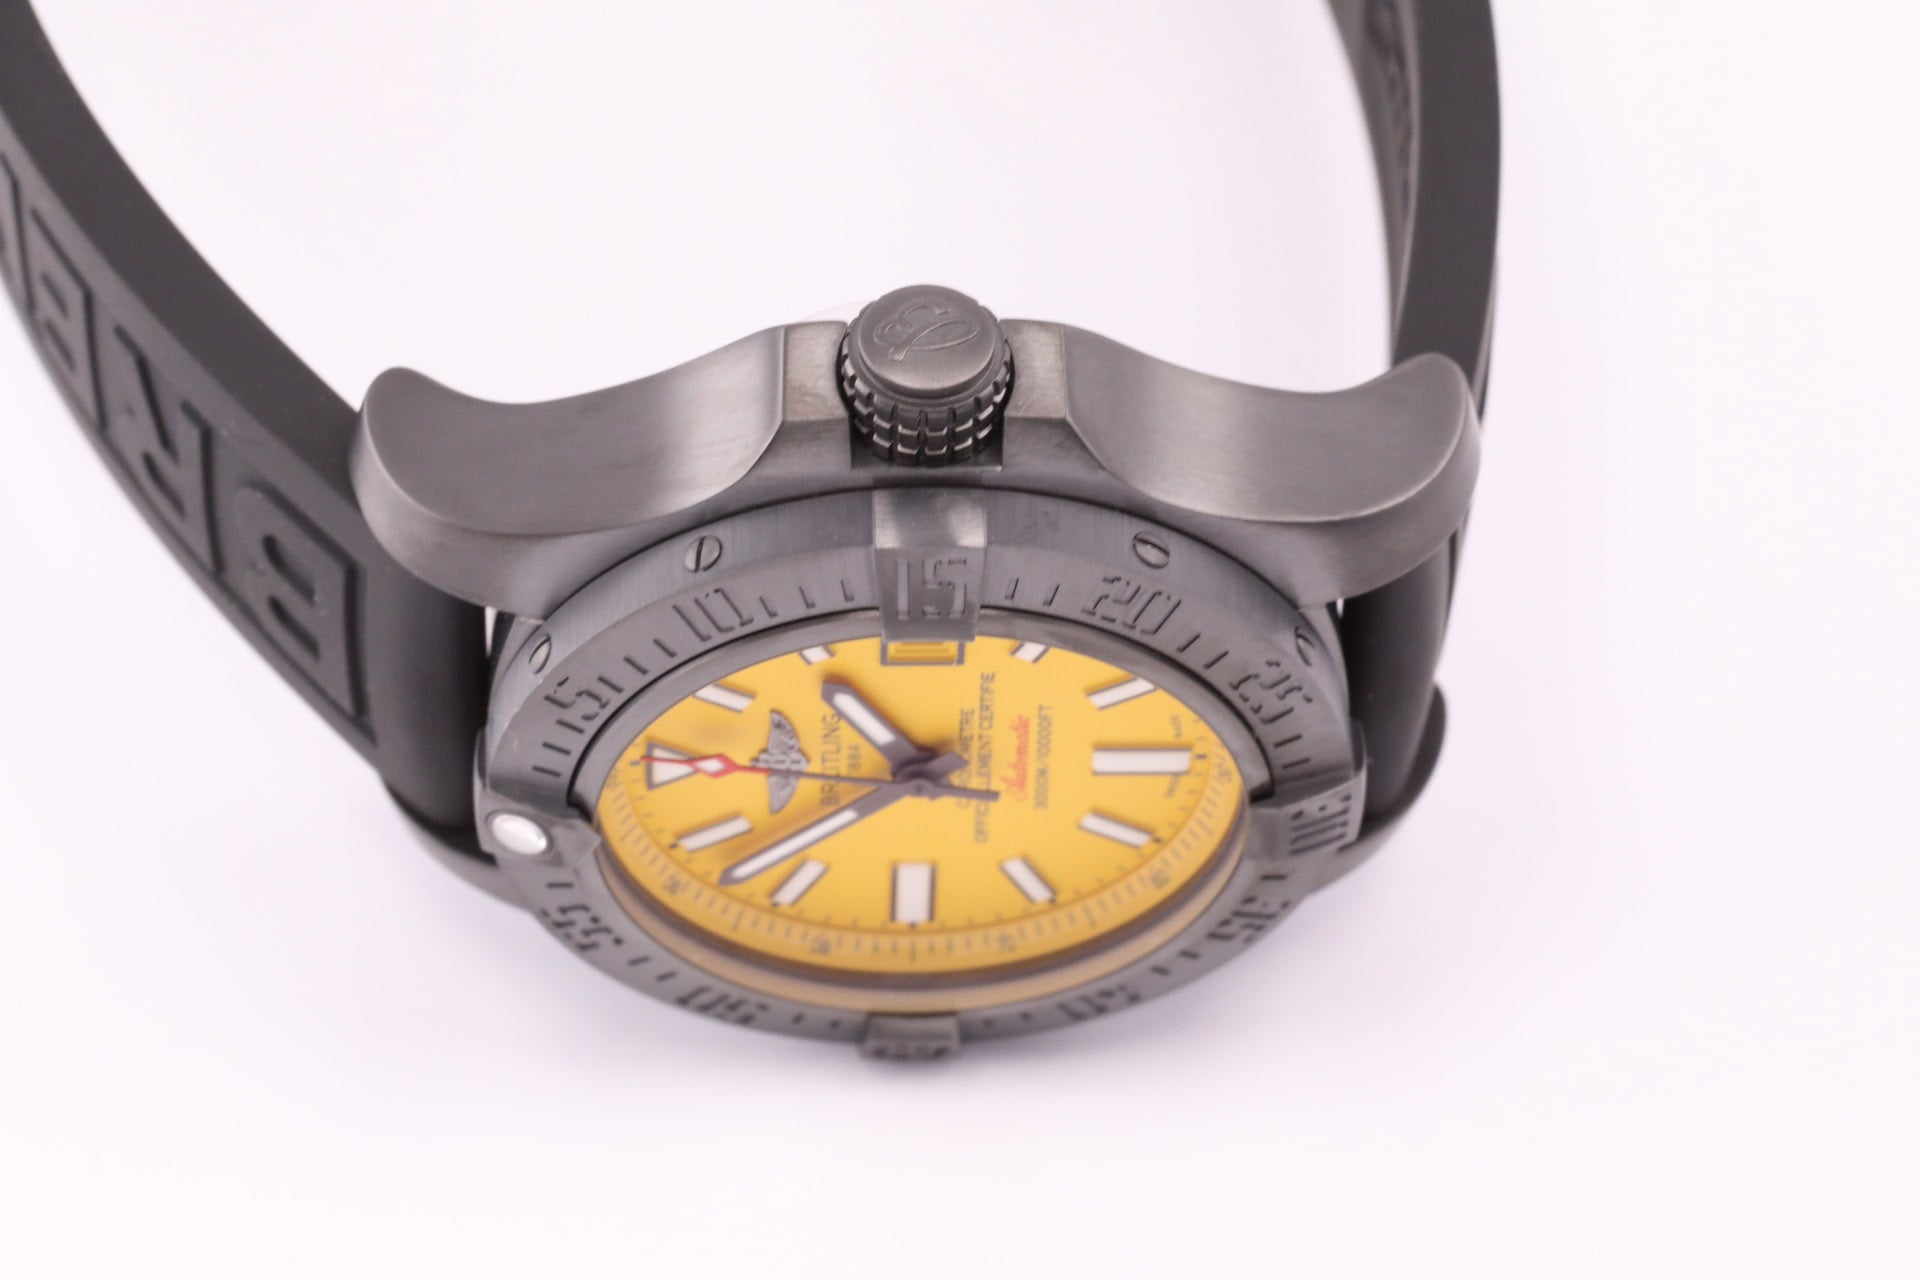 Breitling Avenger II Seawolf Blacksteel Ltd. Edition w Folding Buckle